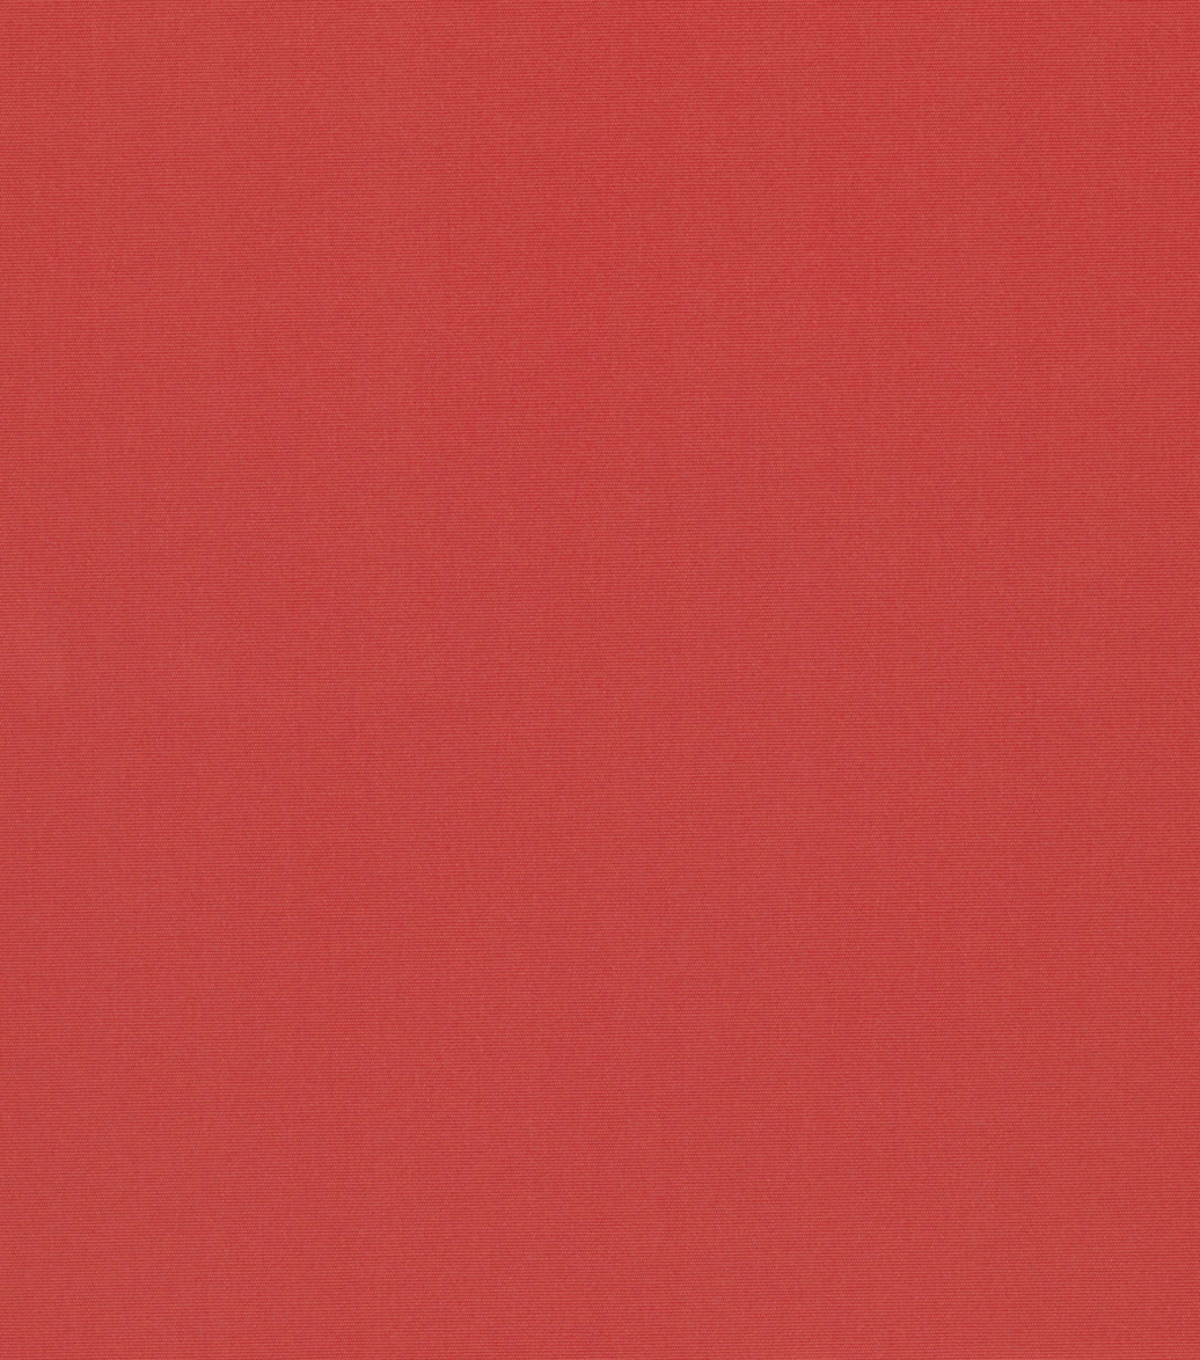 Home Decor 8\u0022x8\u0022 Fabric Swatch-Ceylon-Paprika